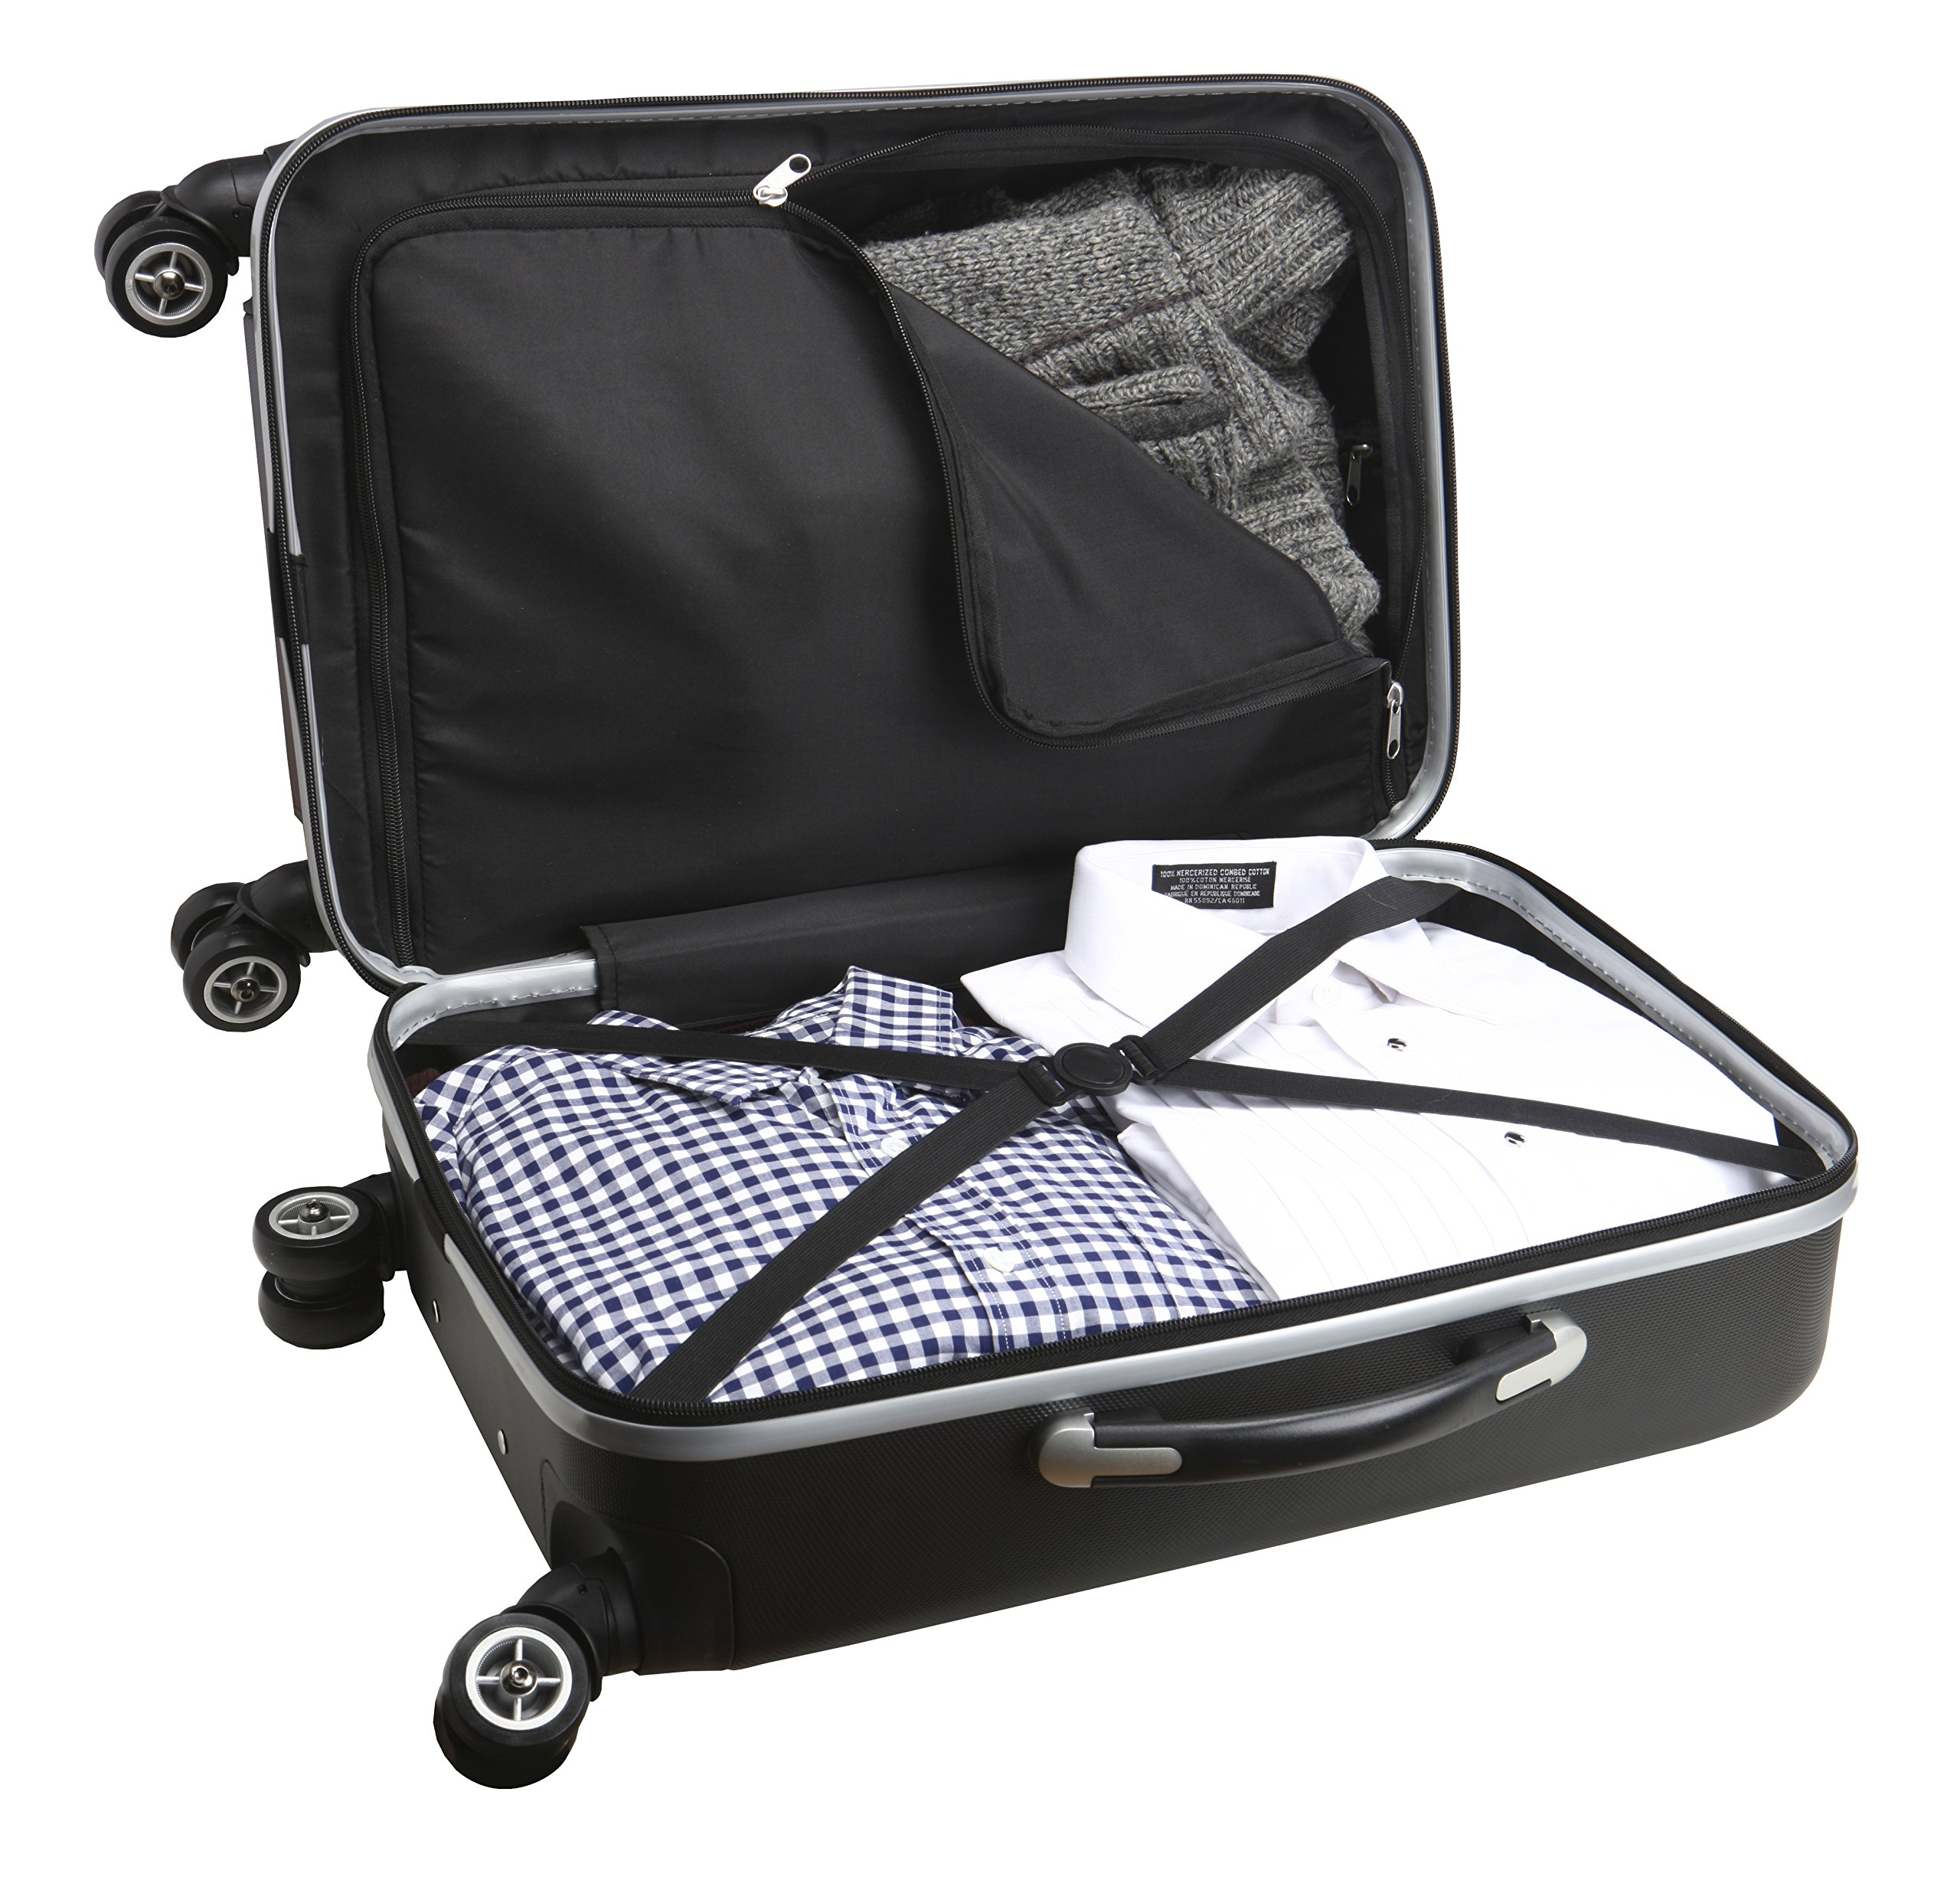 Denco NBA Houston Rockets Carry-On Hardcase Luggage Spinner, Black by Denco (Image #2)